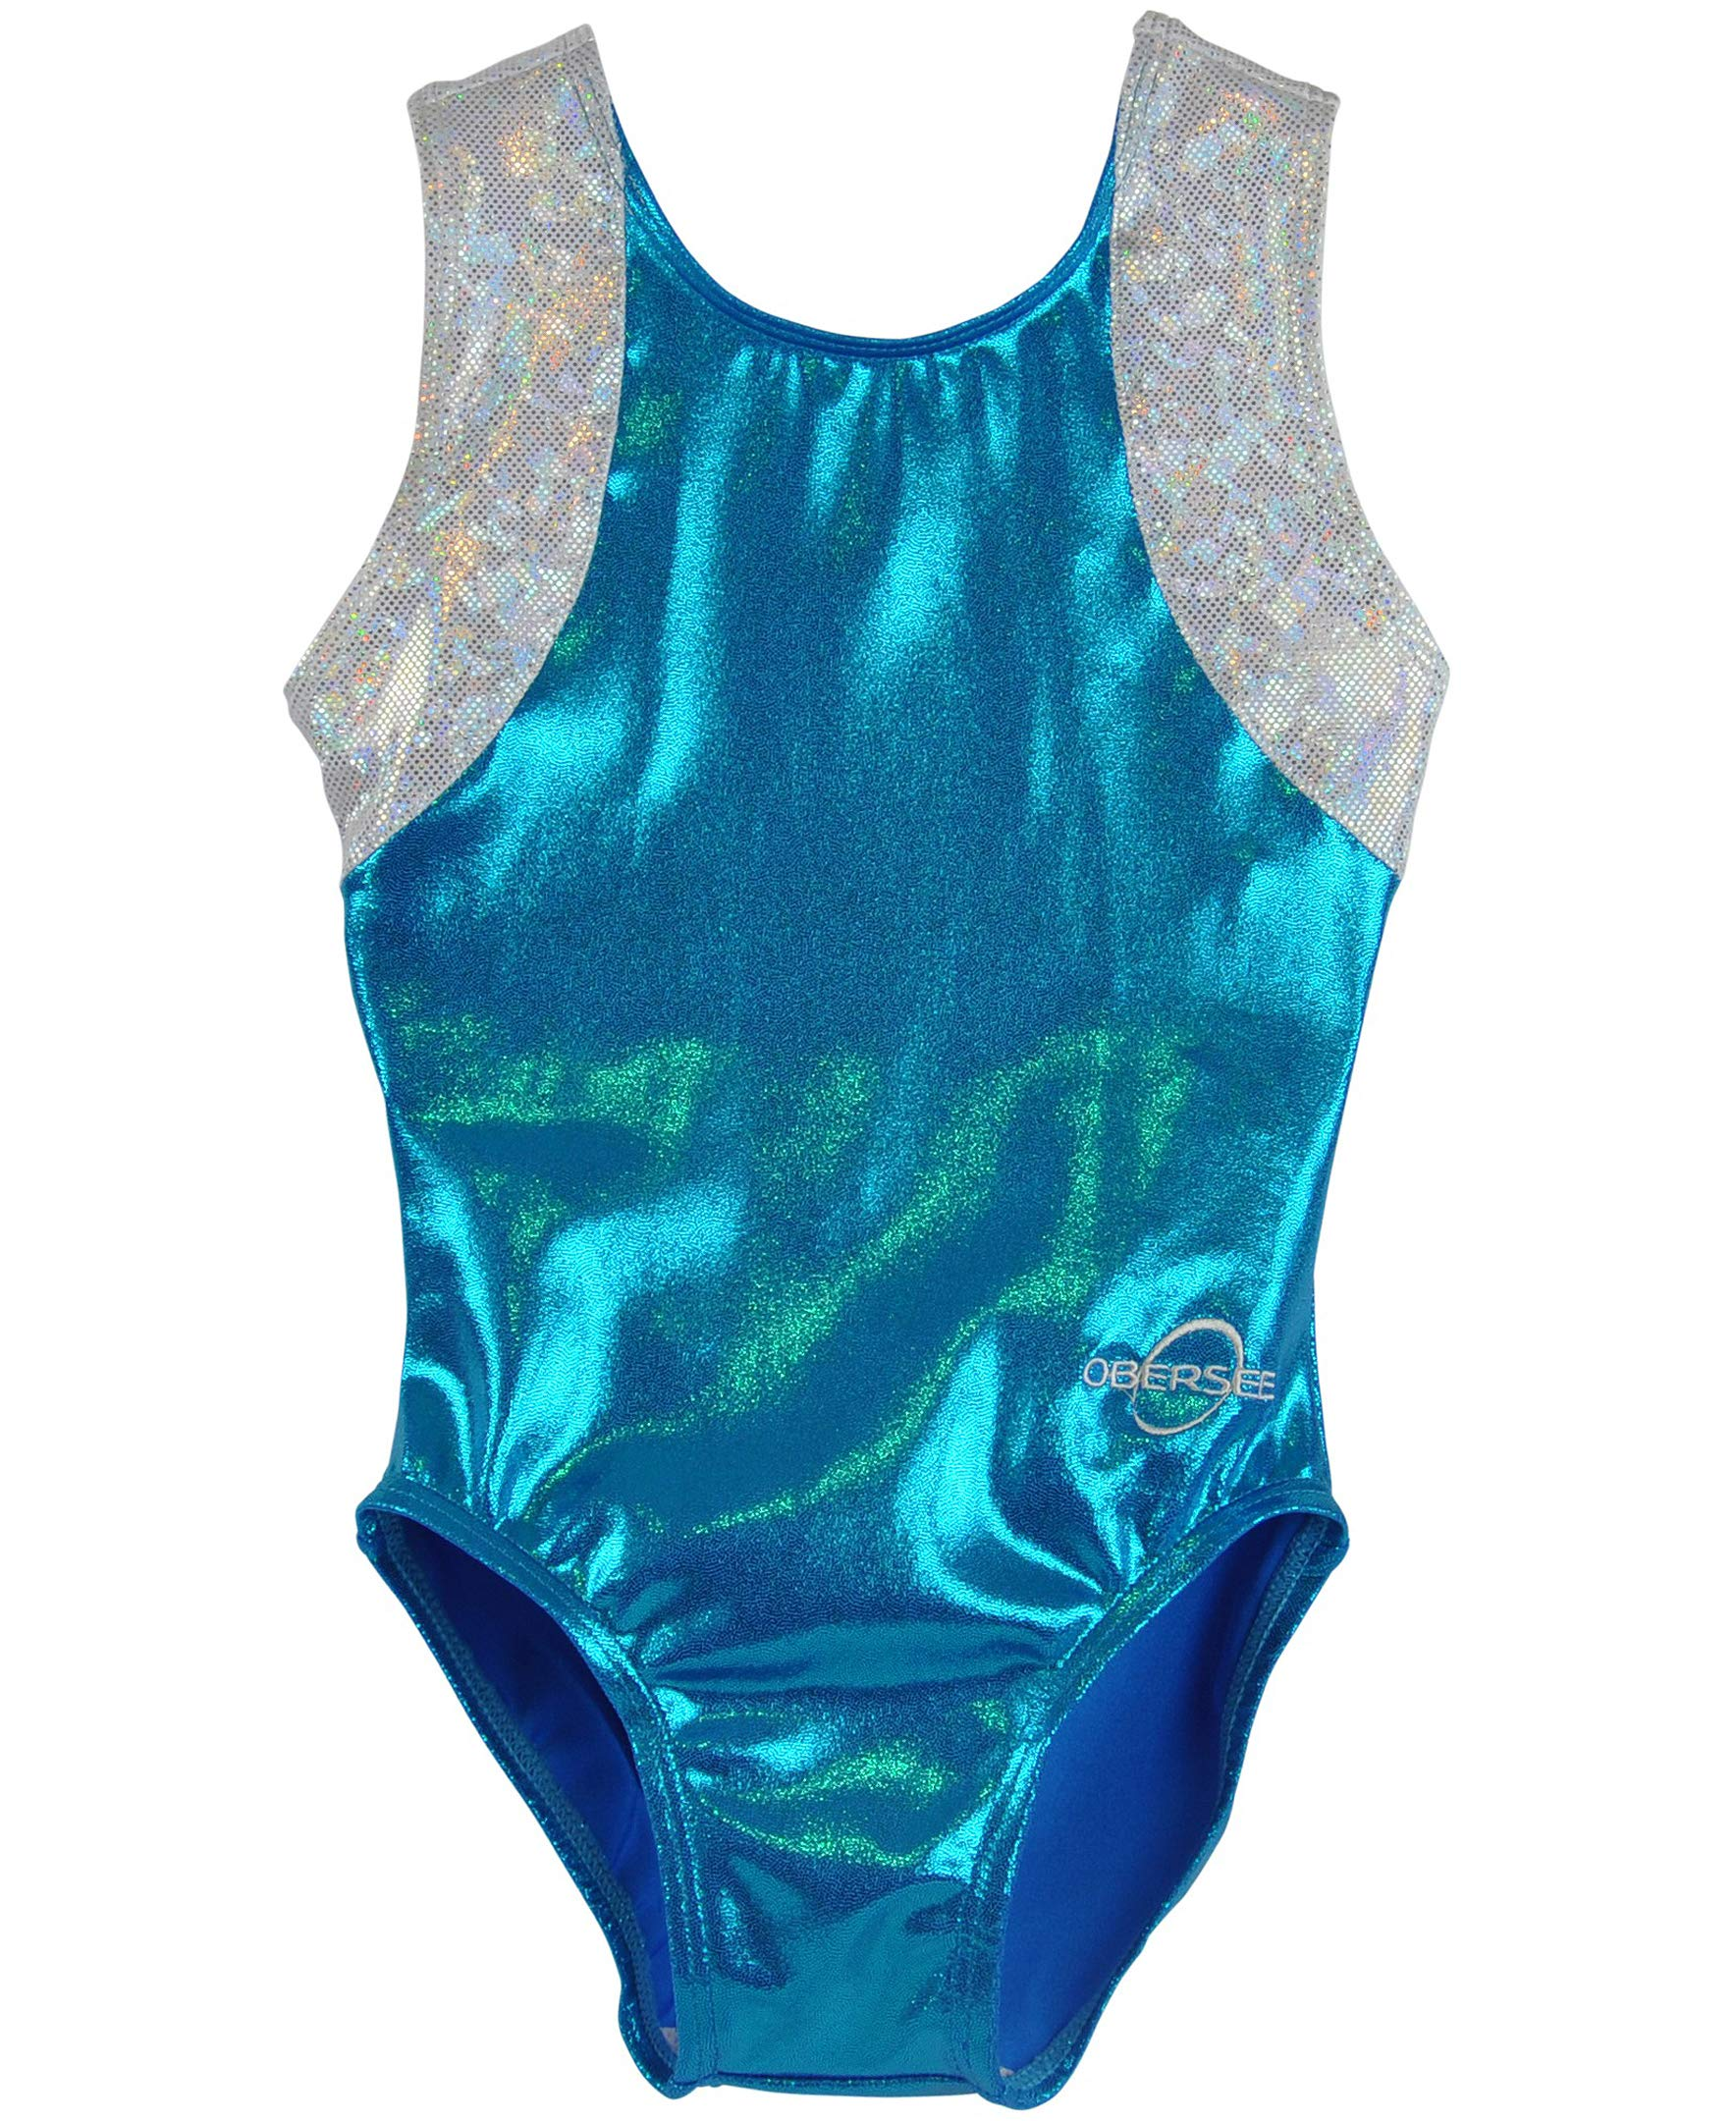 Obersee Girl's Gymnastics Leotards